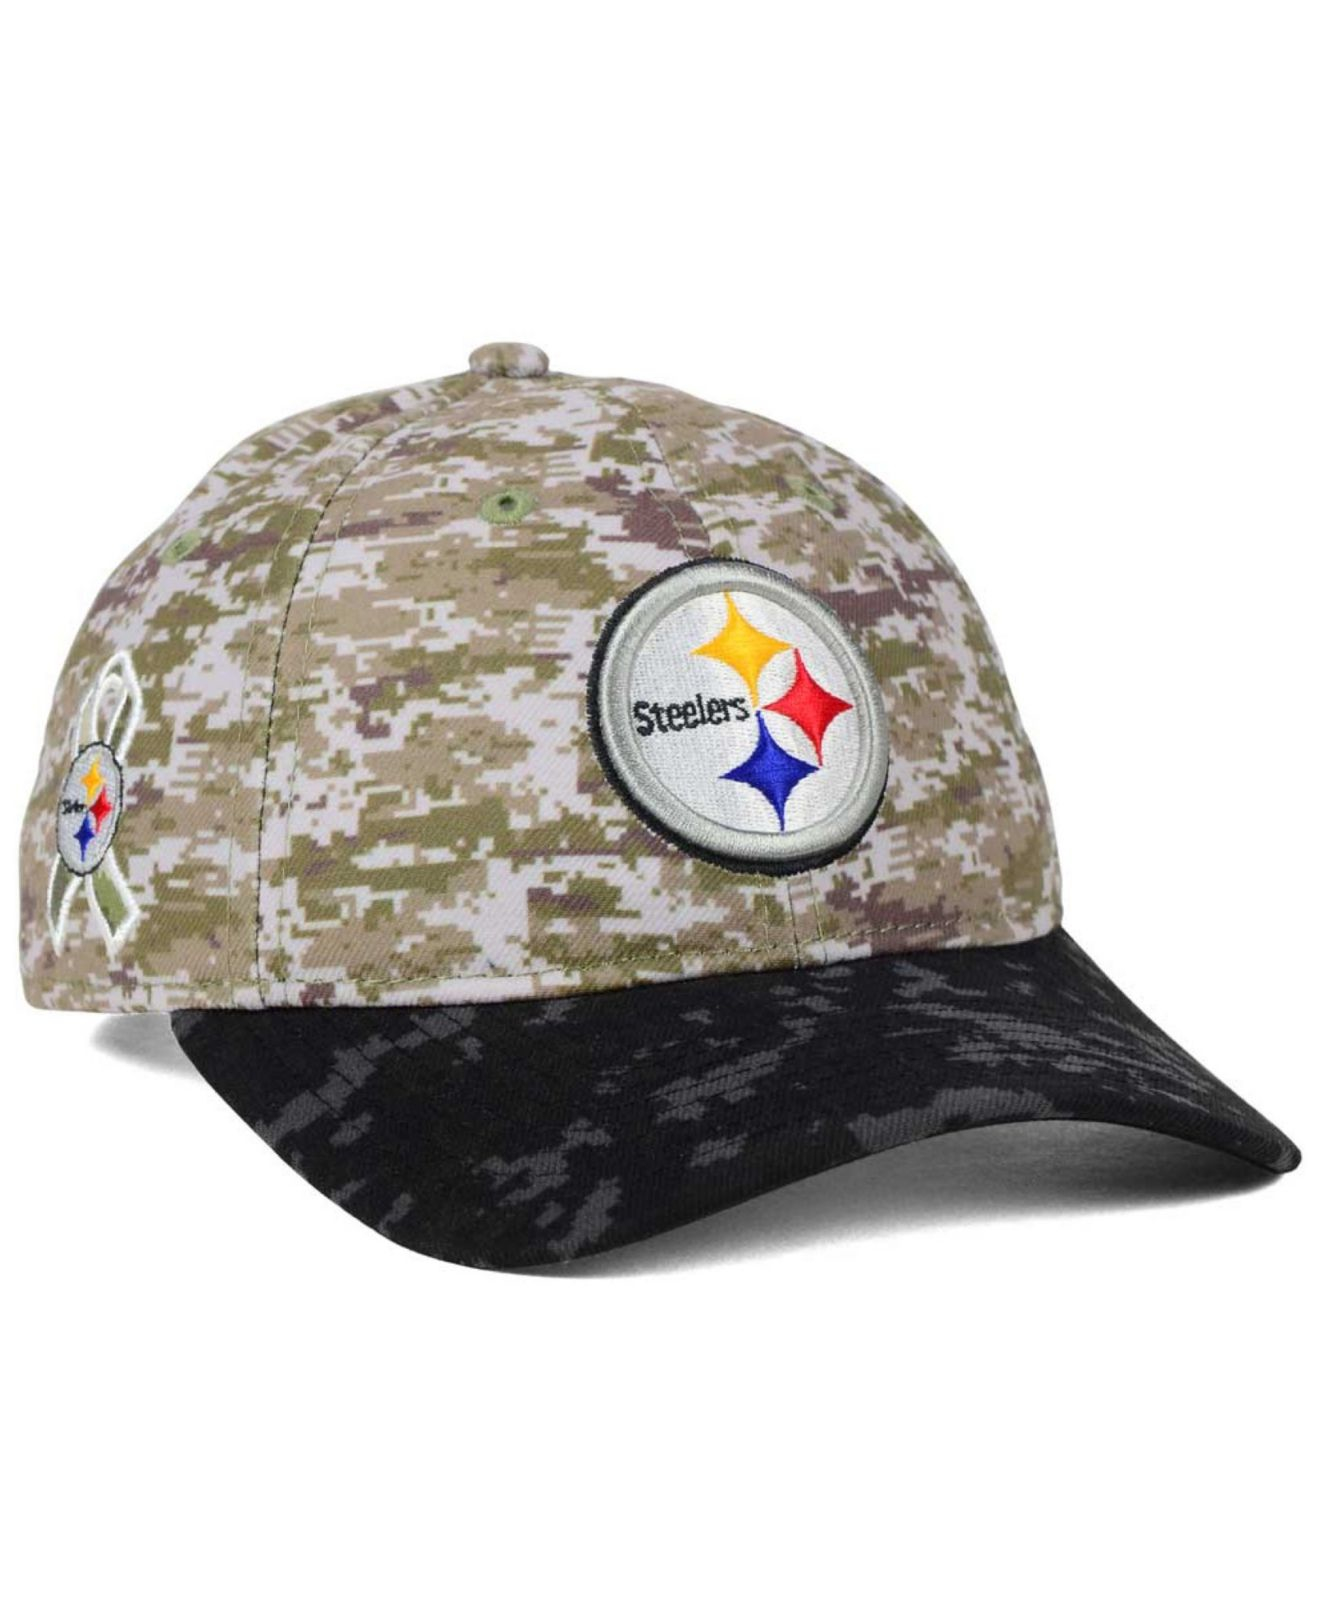 Lyst - Ktz Women s Pittsburgh Steelers Salute To Service 9twenty Cap ... ae8bc8e4d585